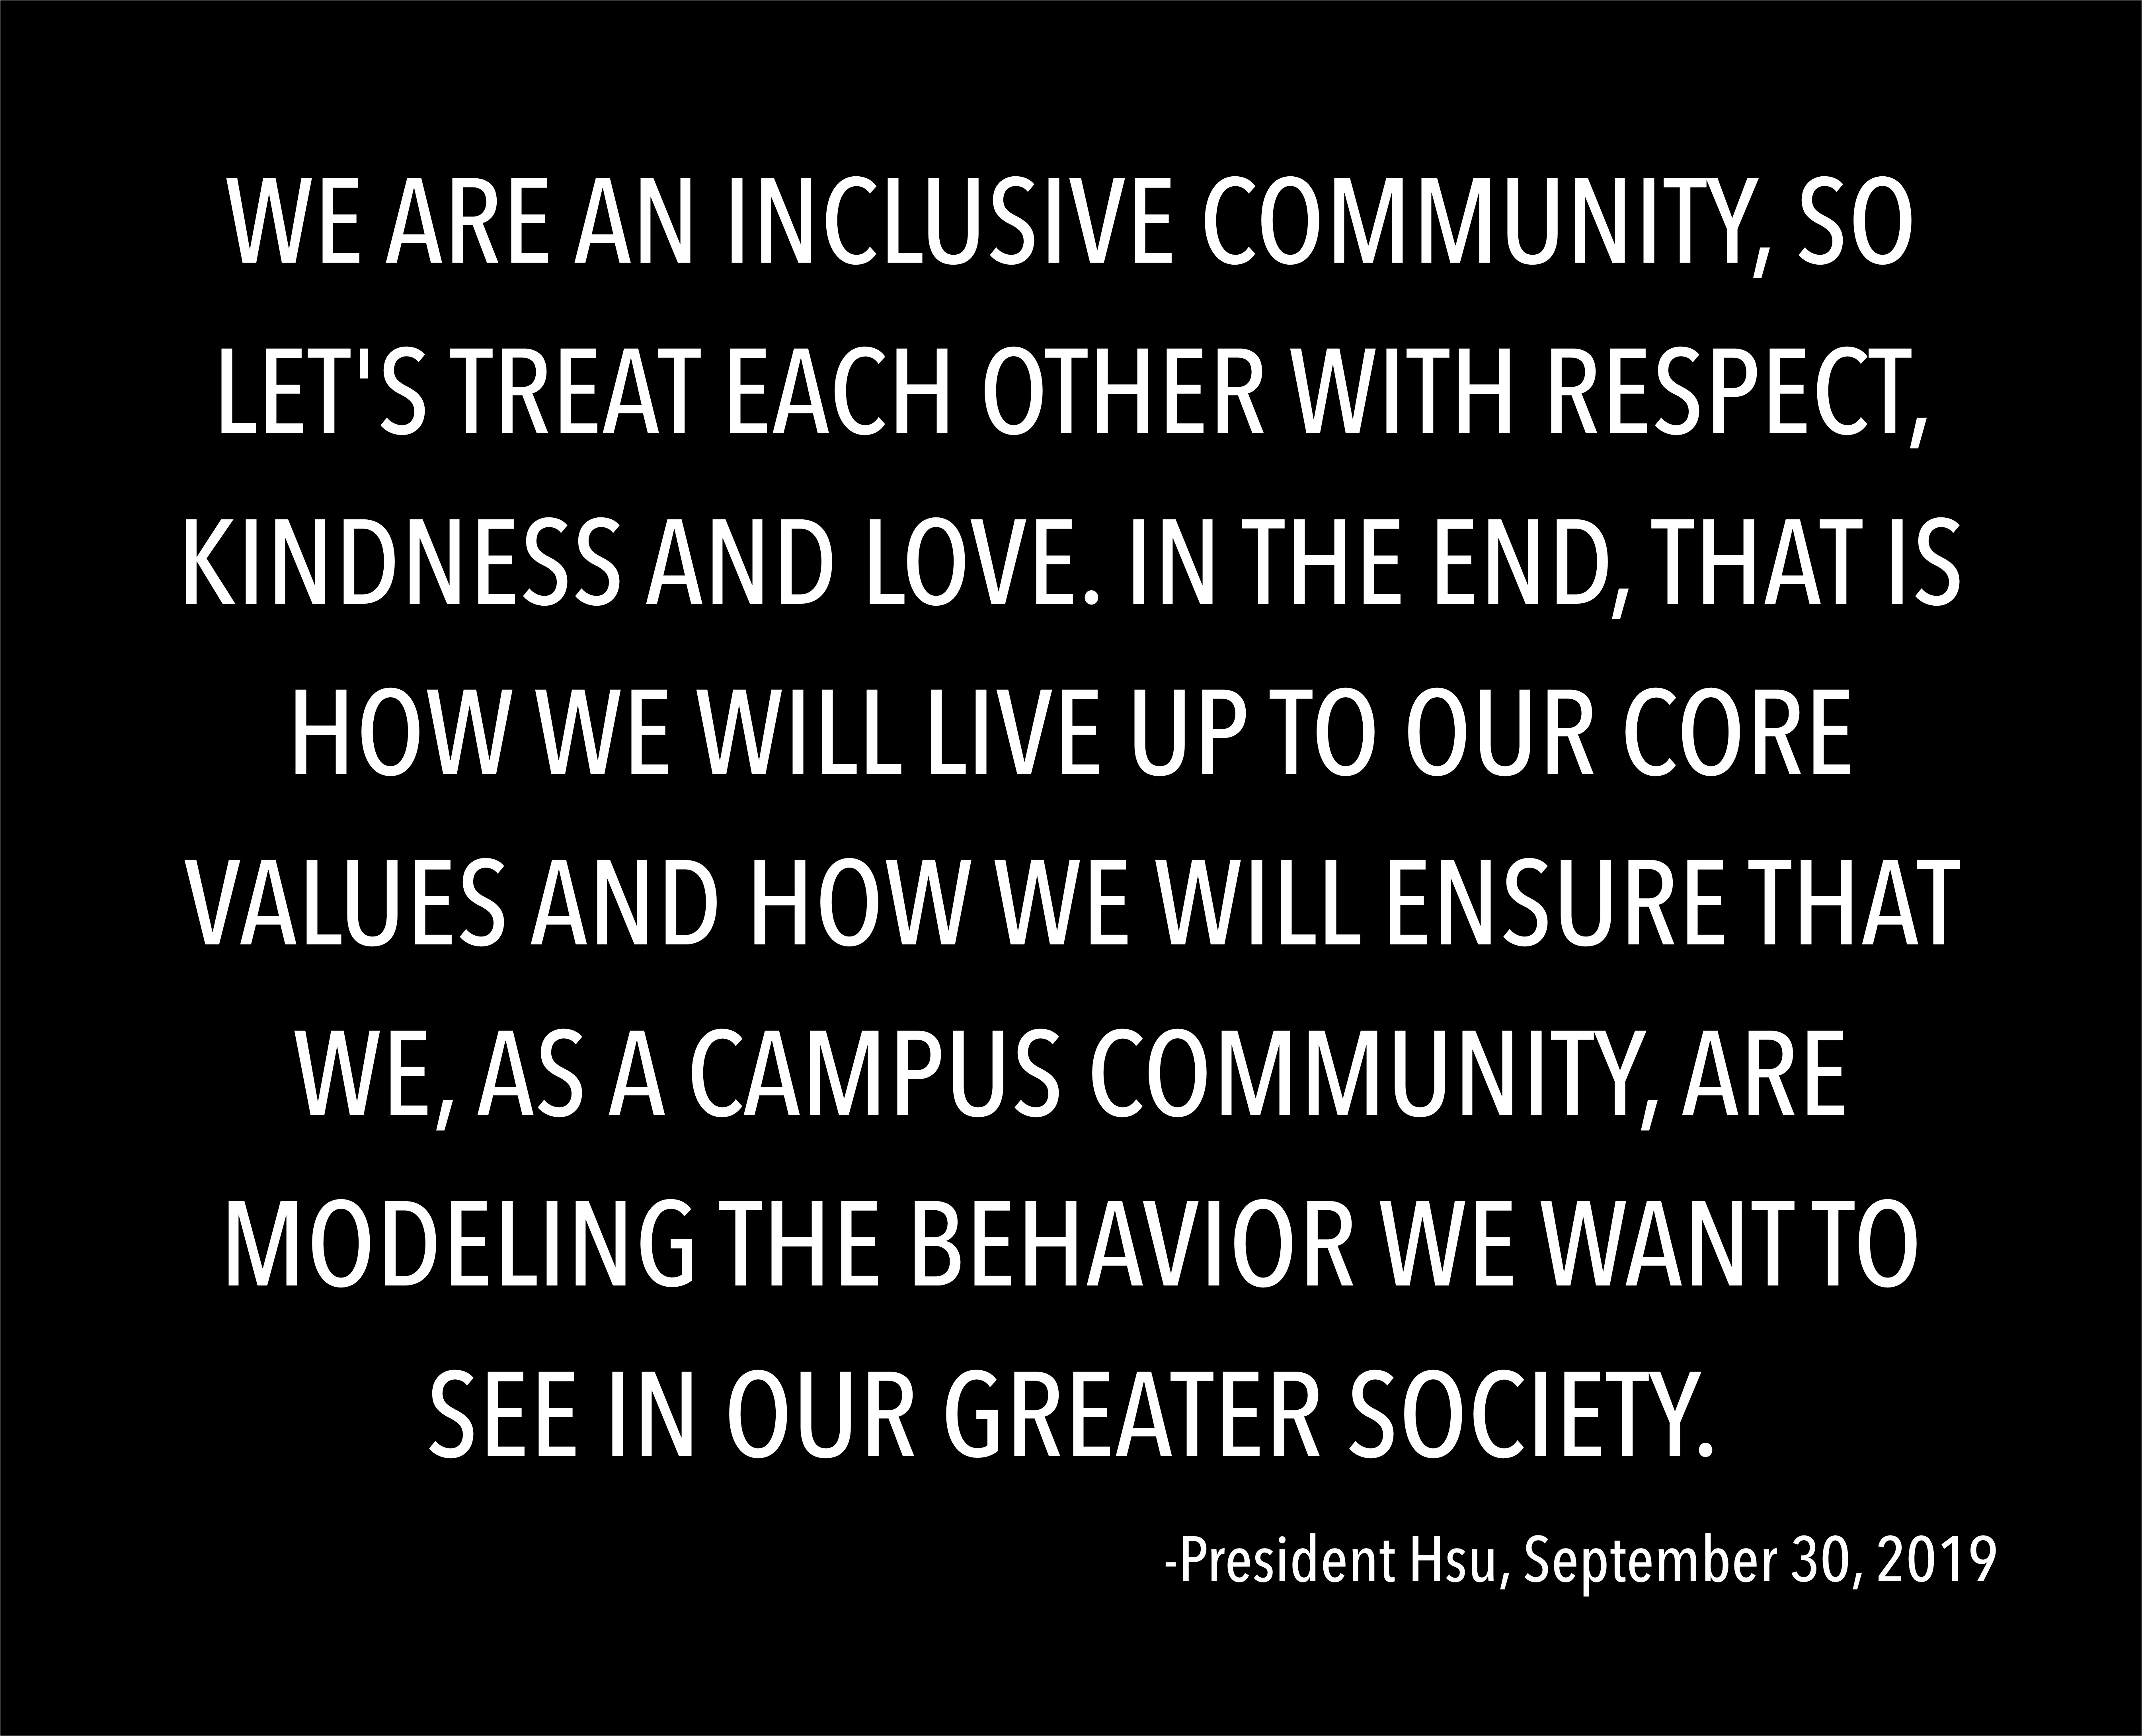 Text: WE ARE AN INCLUSIVE COMMUNITY, SO LET'S TREAT EACH OTHER WITH RESPECT, KINDNESS AND LOVE. IN THE END, THAT IS HOW WE WILL LIVE UP TO OUR CORE VALUES AND HOW WE WILL ENSURE THAT WE, AS A CAMPUS COMMUNITY, ARE MODELING THE BEHAVIOR WE WANT TO SEE IN OUR GREATER SOCIETY.  -President Hsu, September 30, 2019